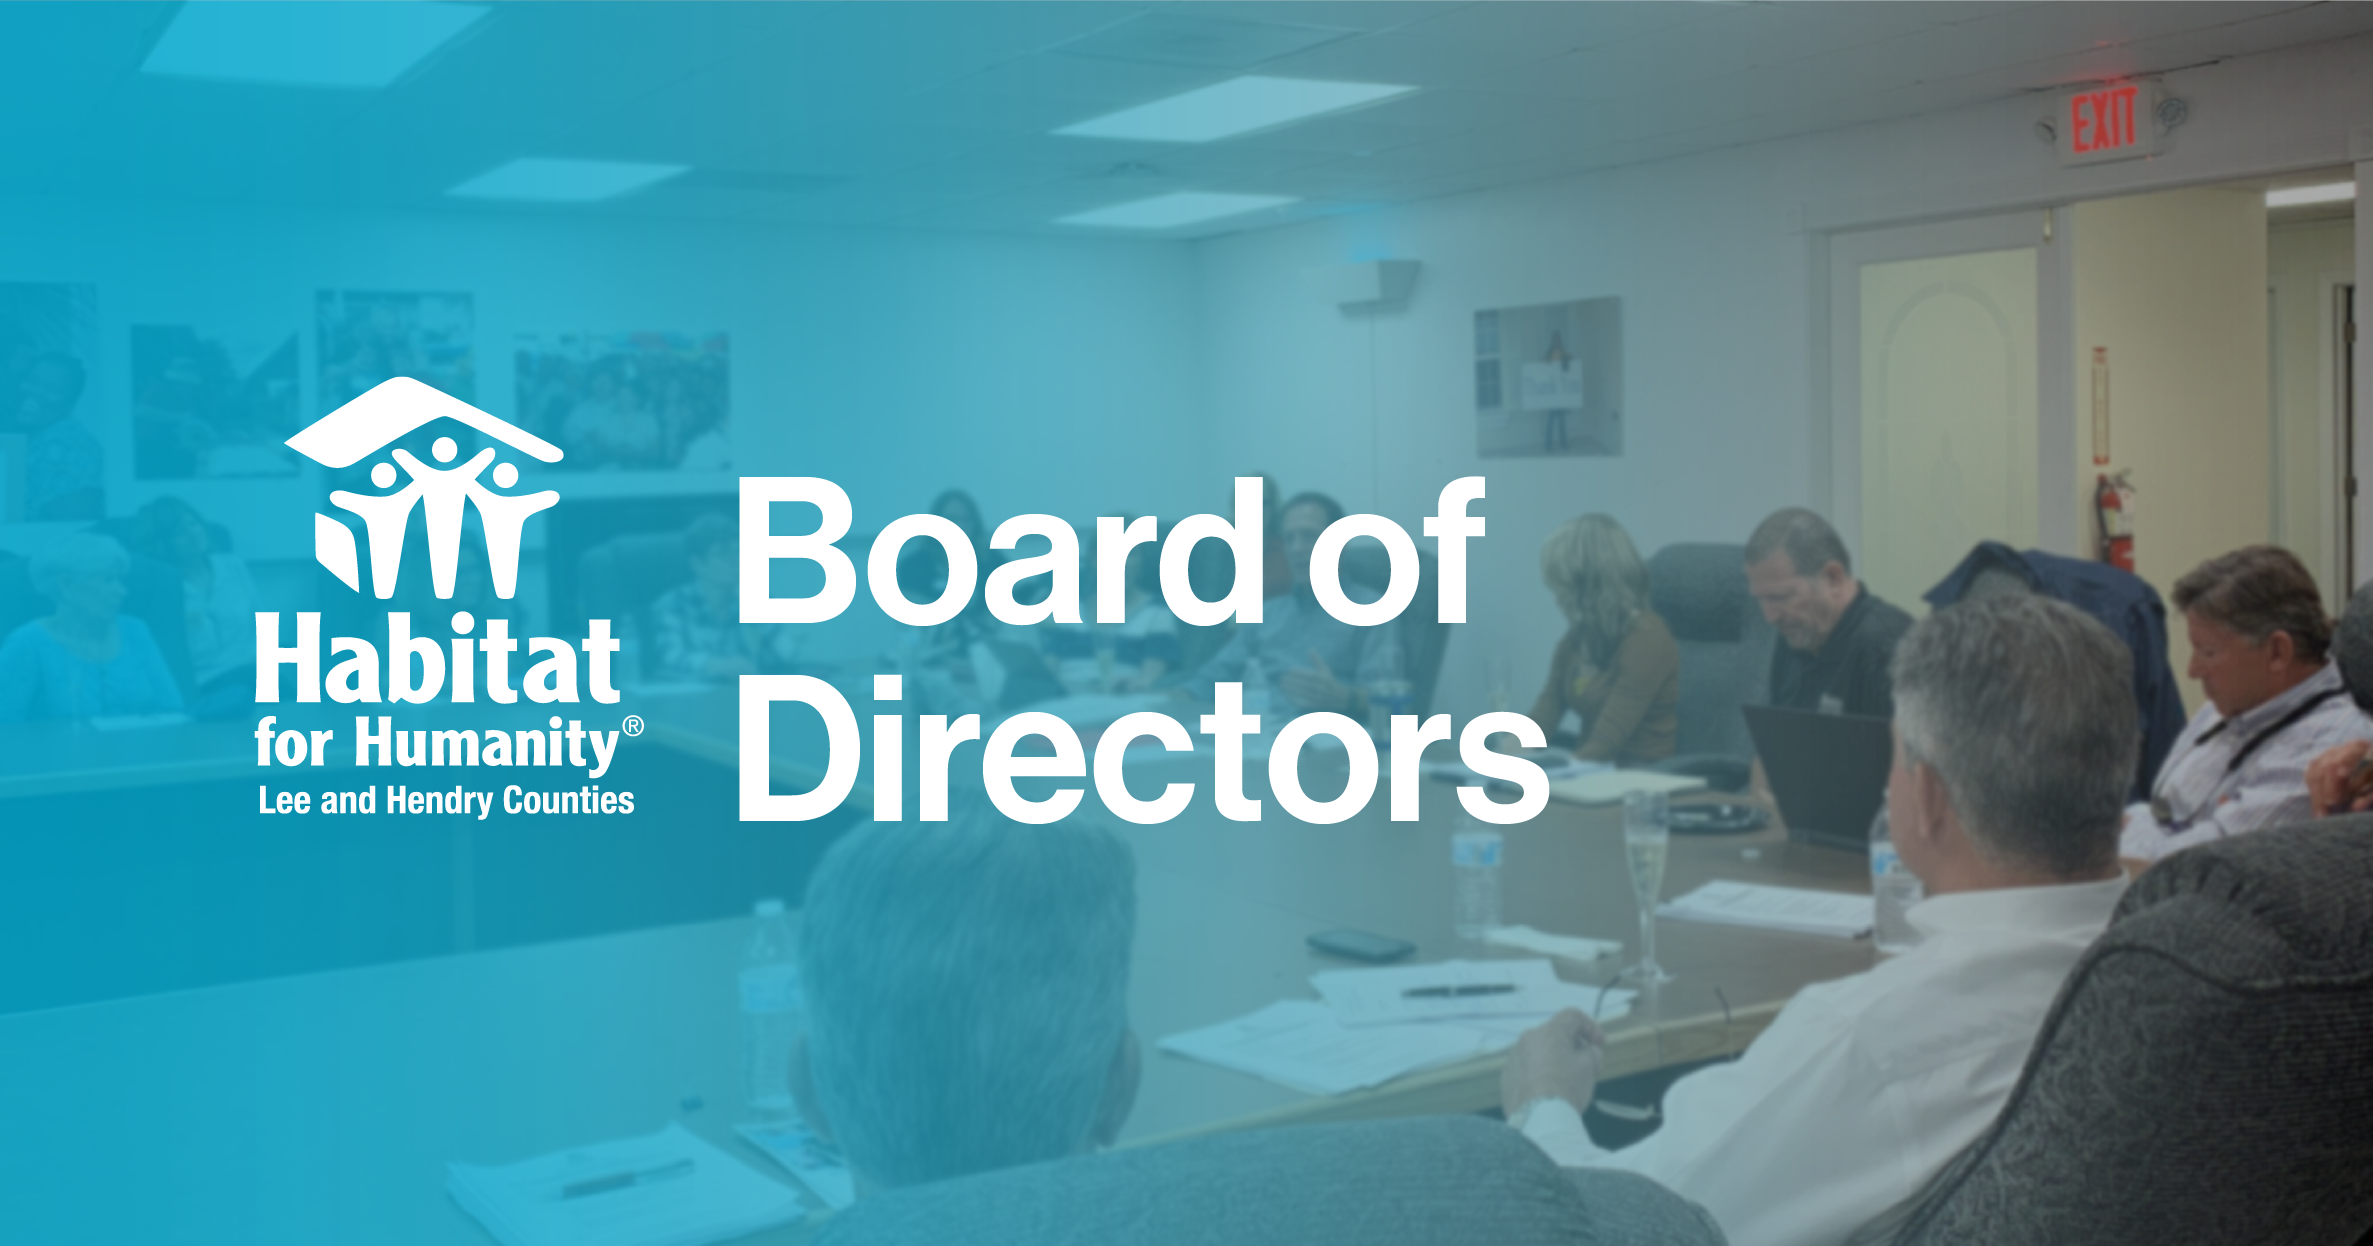 Habitat for Humanity of Lee and Hendry Counties welcomes new Board members